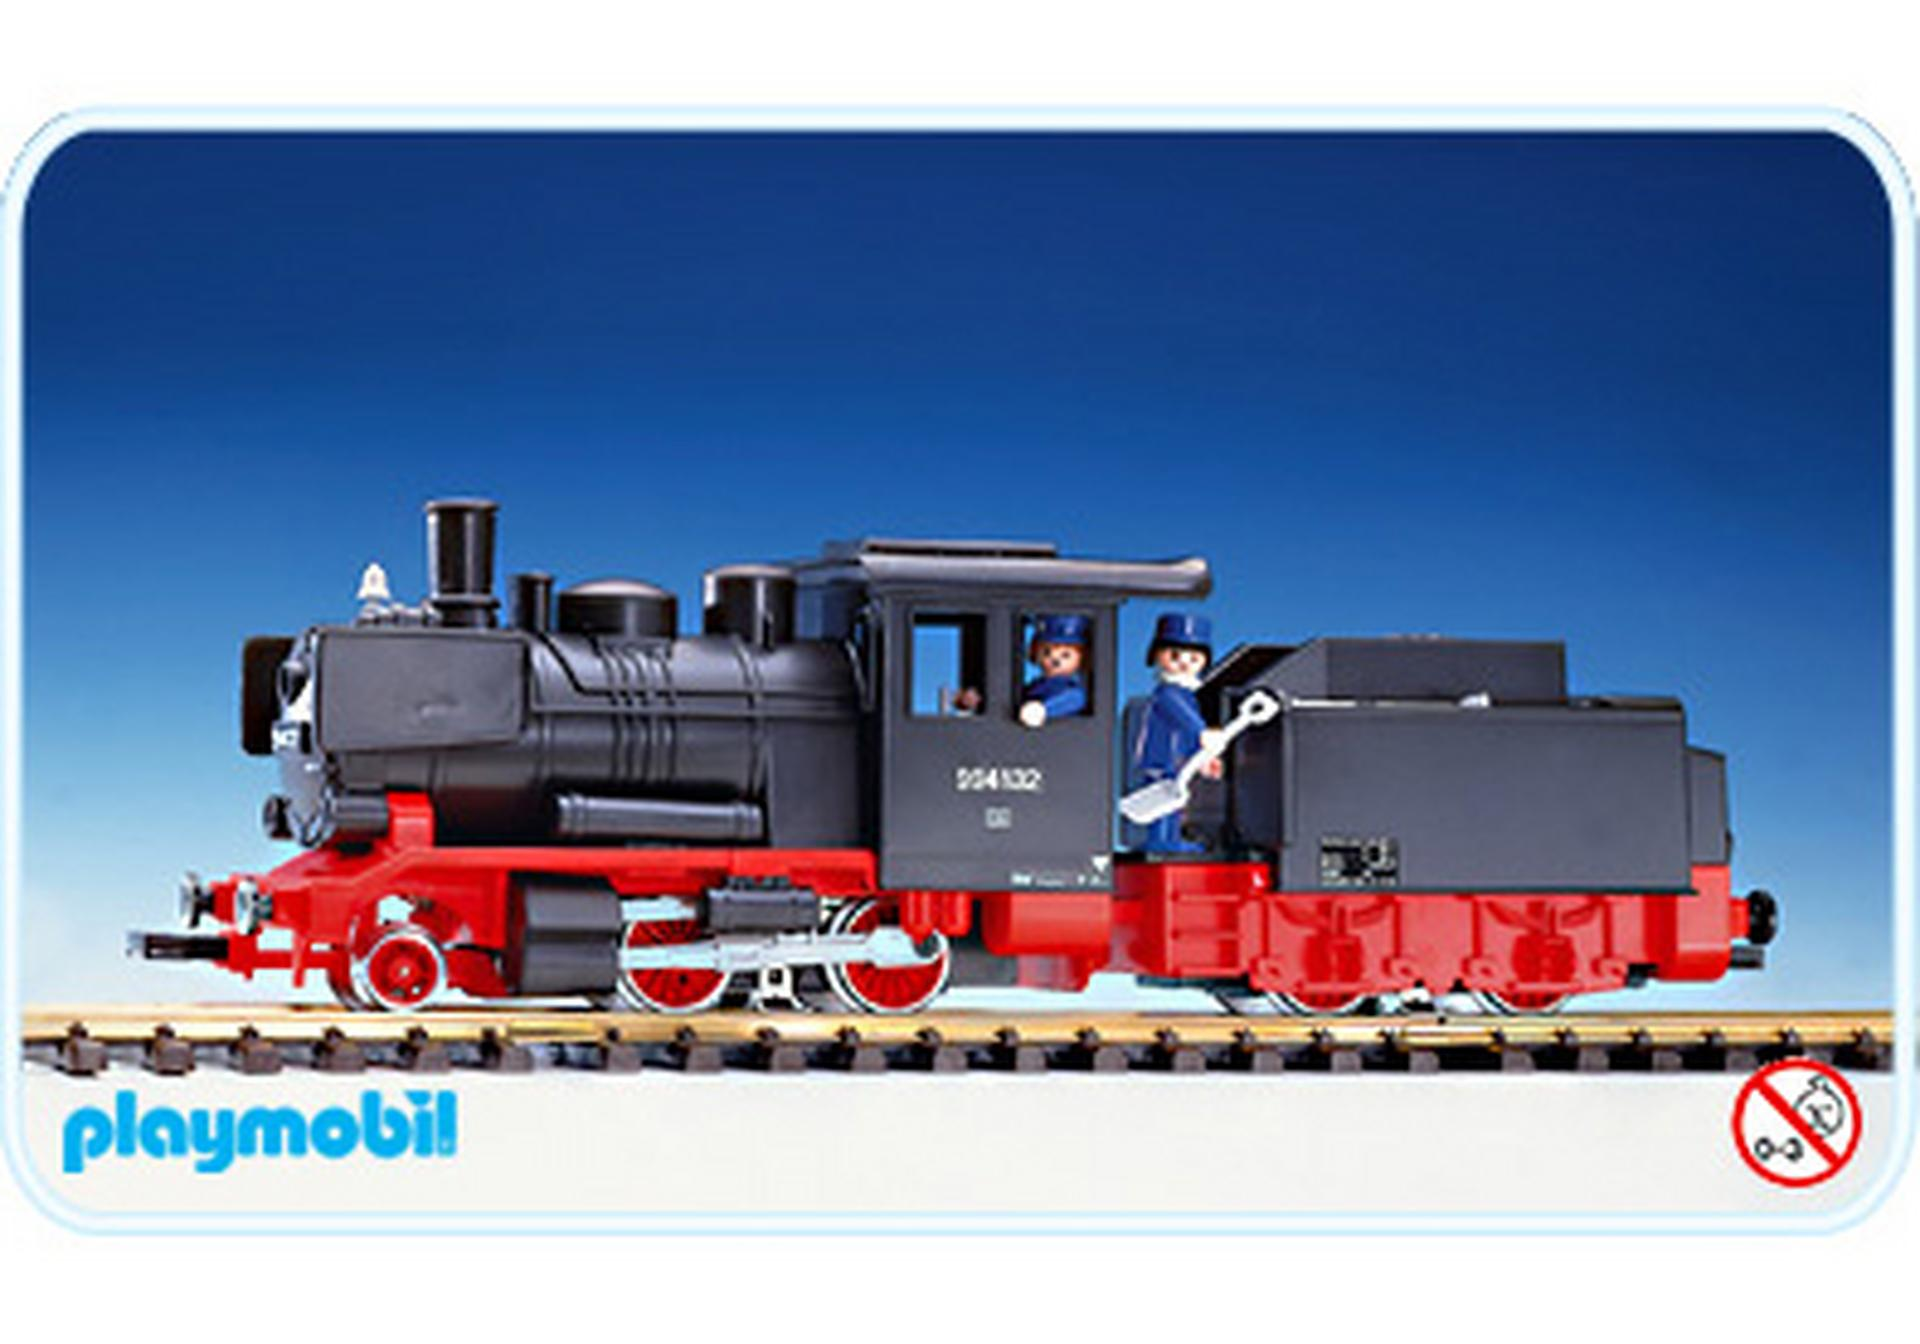 Locomotive tender 4052 a playmobil france for Playmobil buanderie